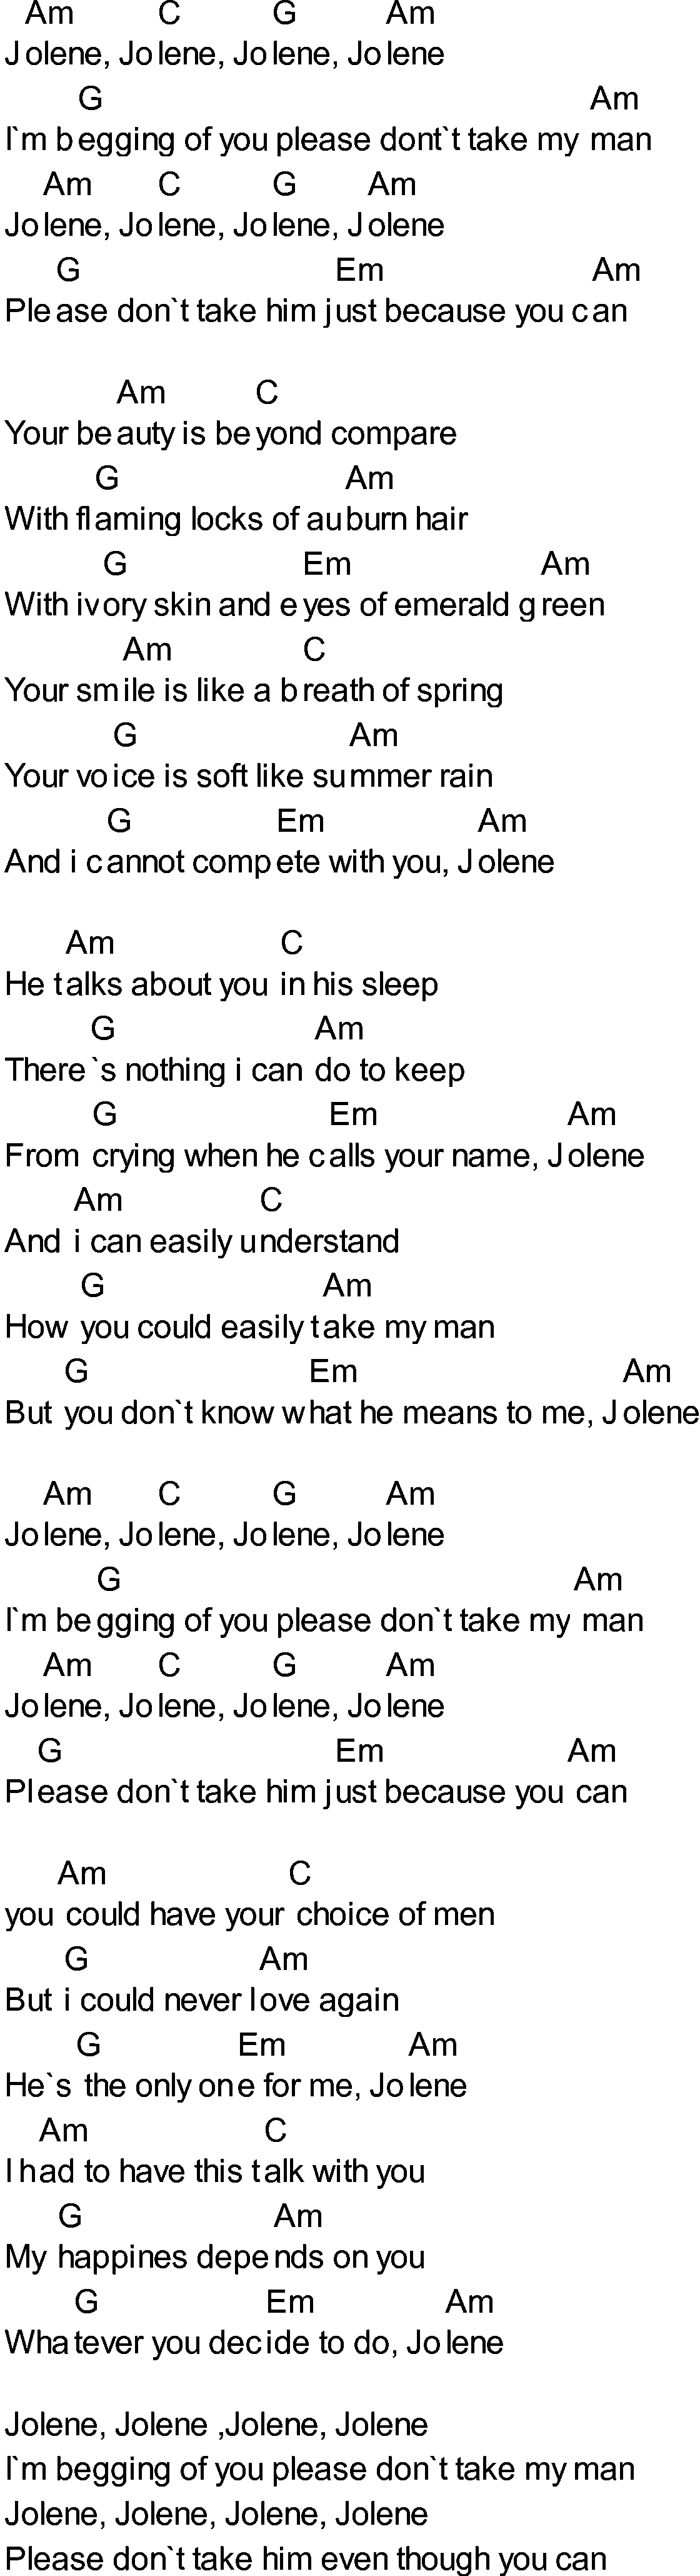 Jolene chords download the song in pdf format for printout etc bluegrass songs collection lyrics with chords for guitar banjo mandolin etc with pdf hexwebz Choice Image